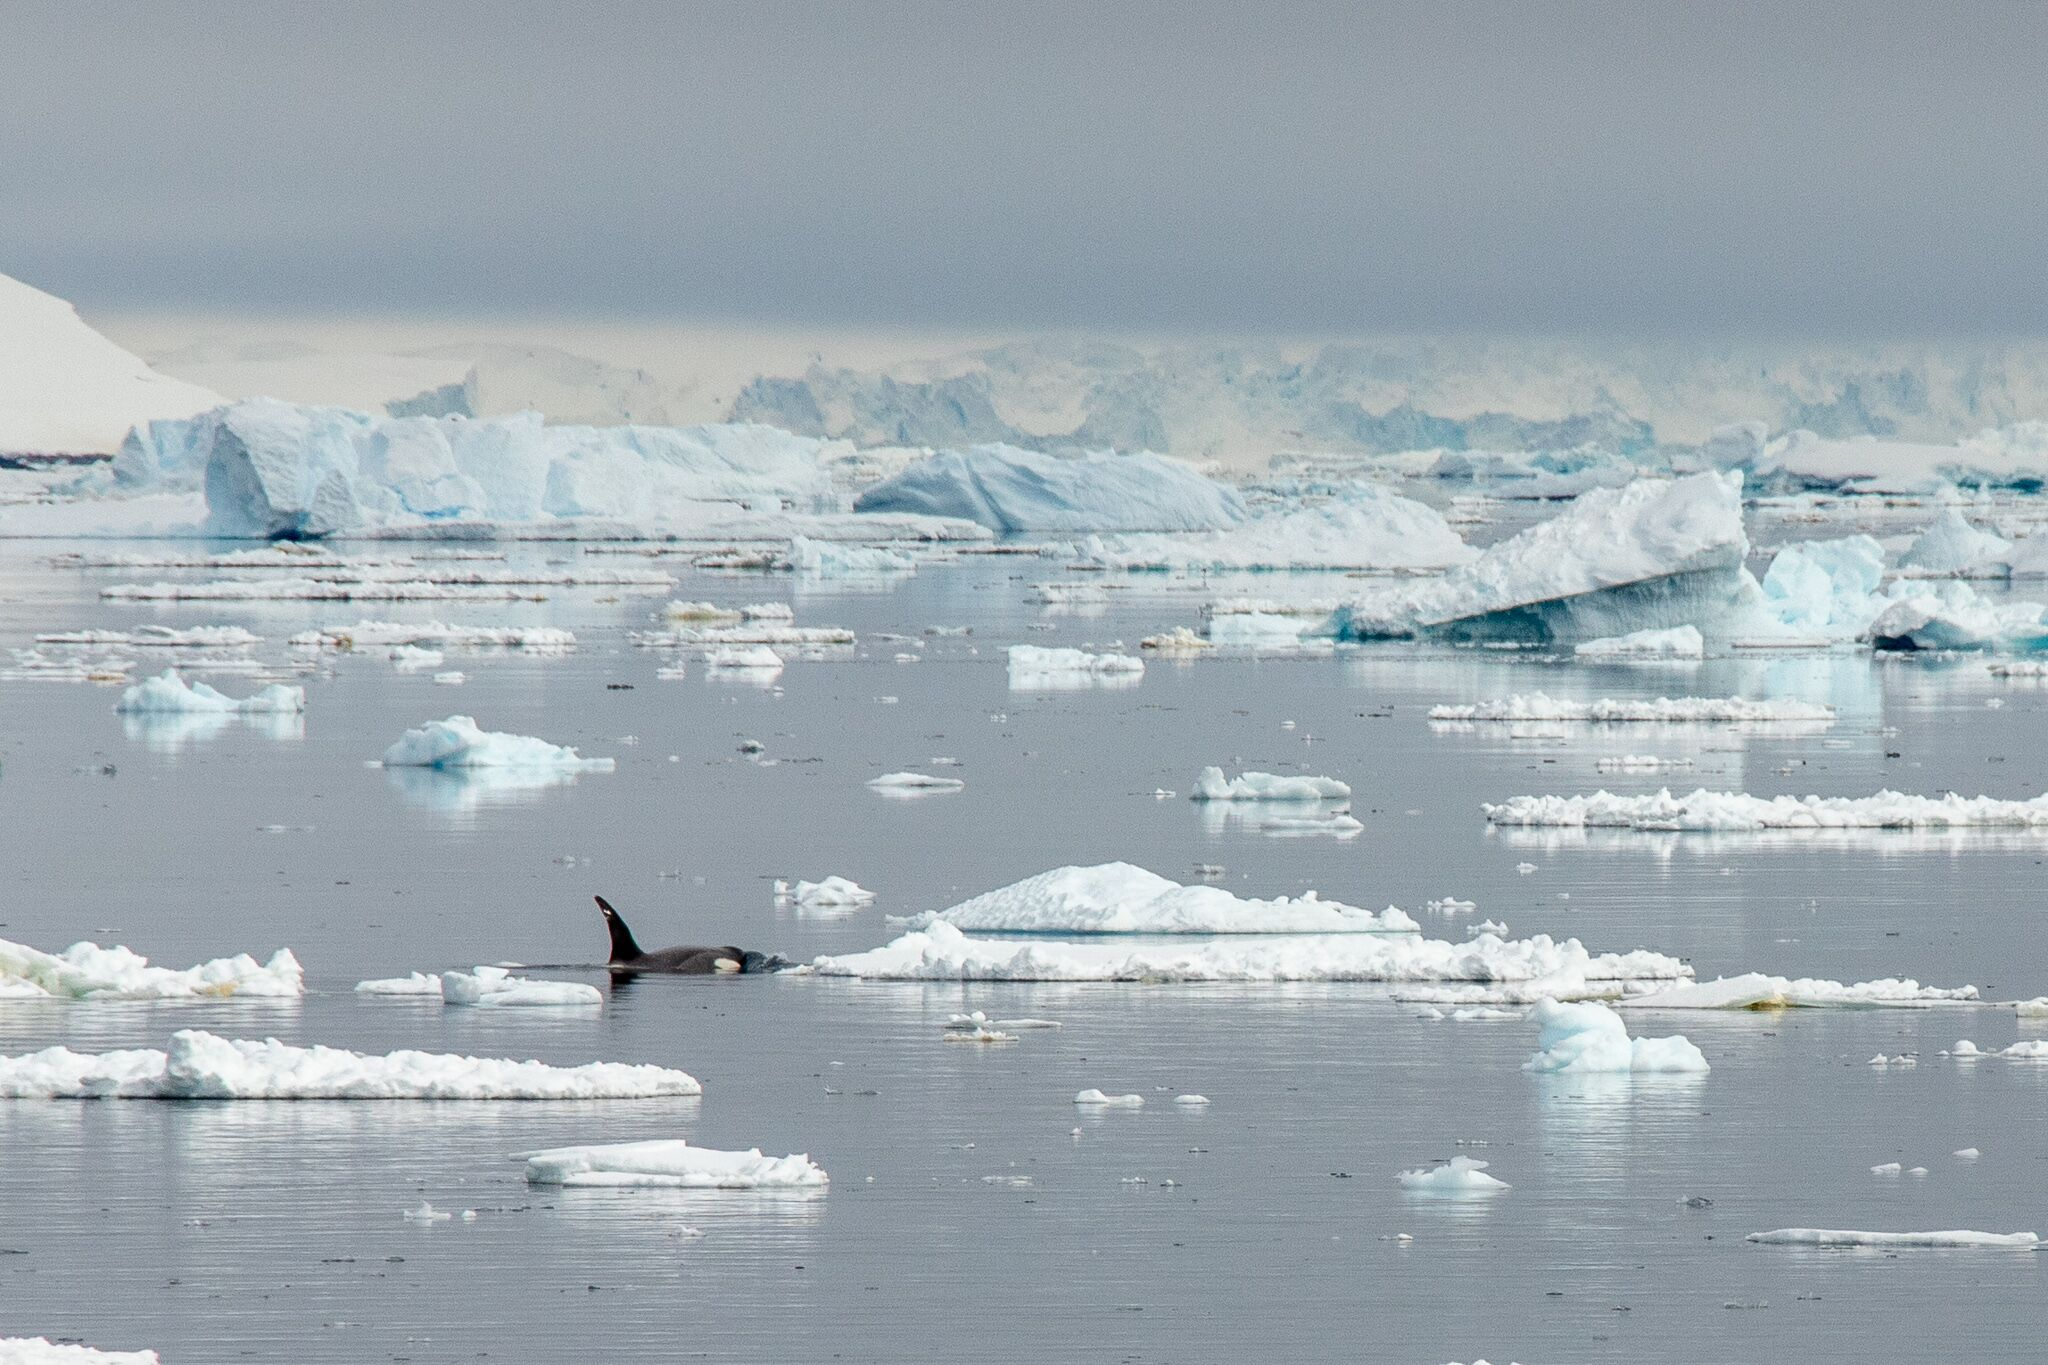 Orca whale swimming amongst floating ice